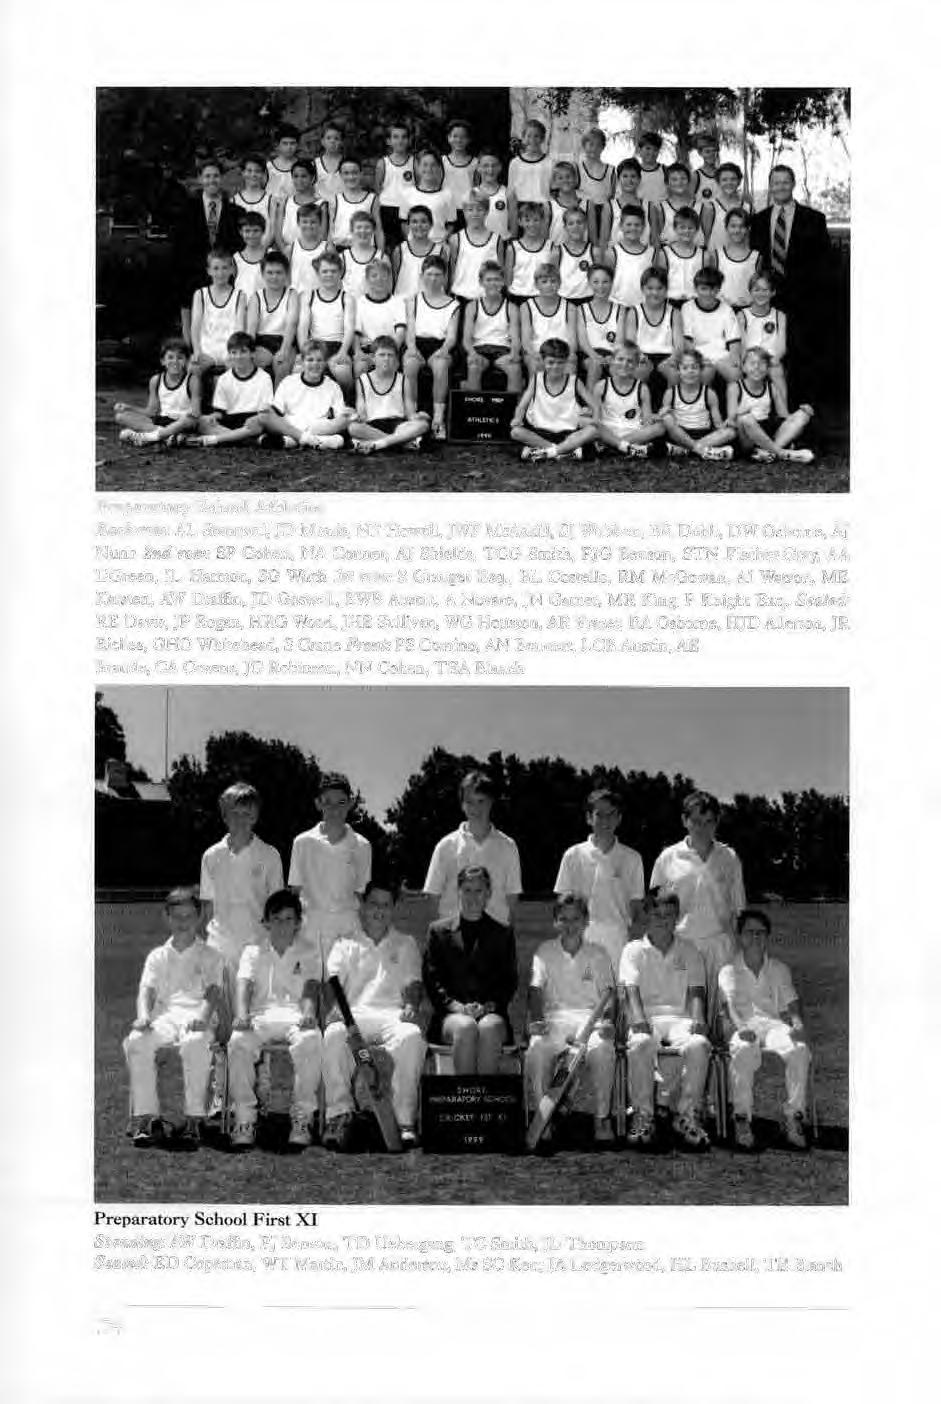 Preparato1-y School Athletics Back row: AL Stannard, JD Morris, NF Howe ll, JWF McAskH I.